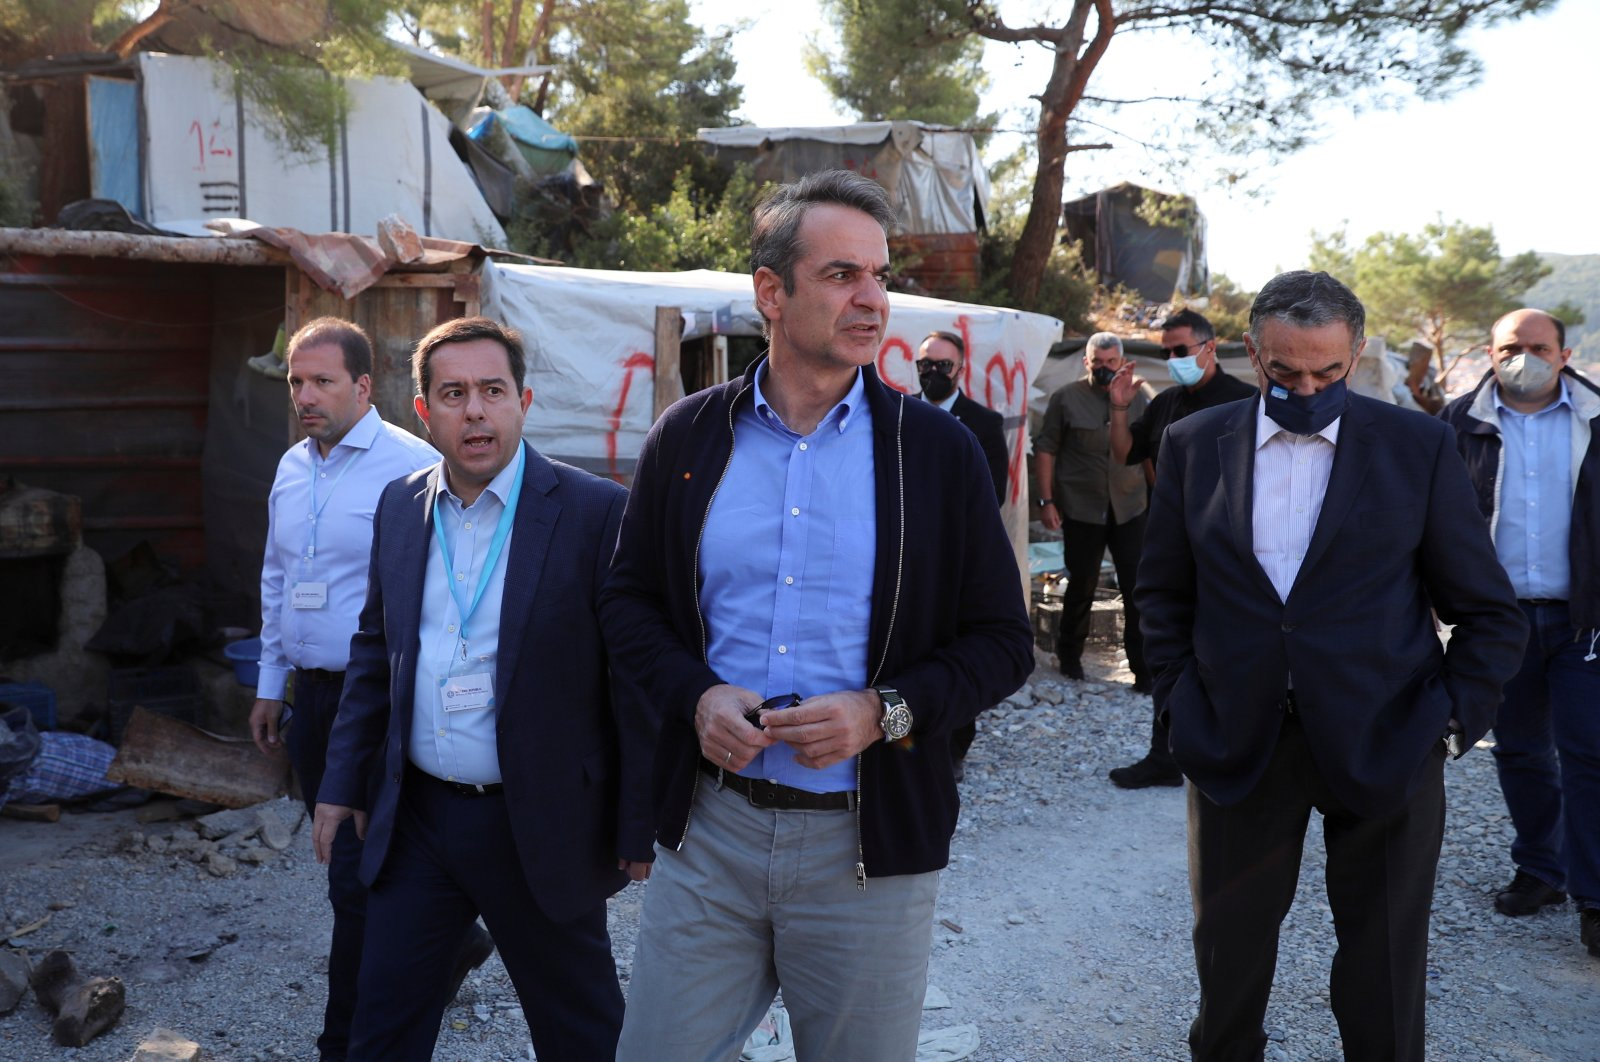 Greek Prime Minister Kyriakos Mitsotakis (C) and Migration Minister Notis Mitarachi (L) visit a disused migrant camp on the island of Samos, Greece, Oct. 1, 2021. (Reuters Photo)